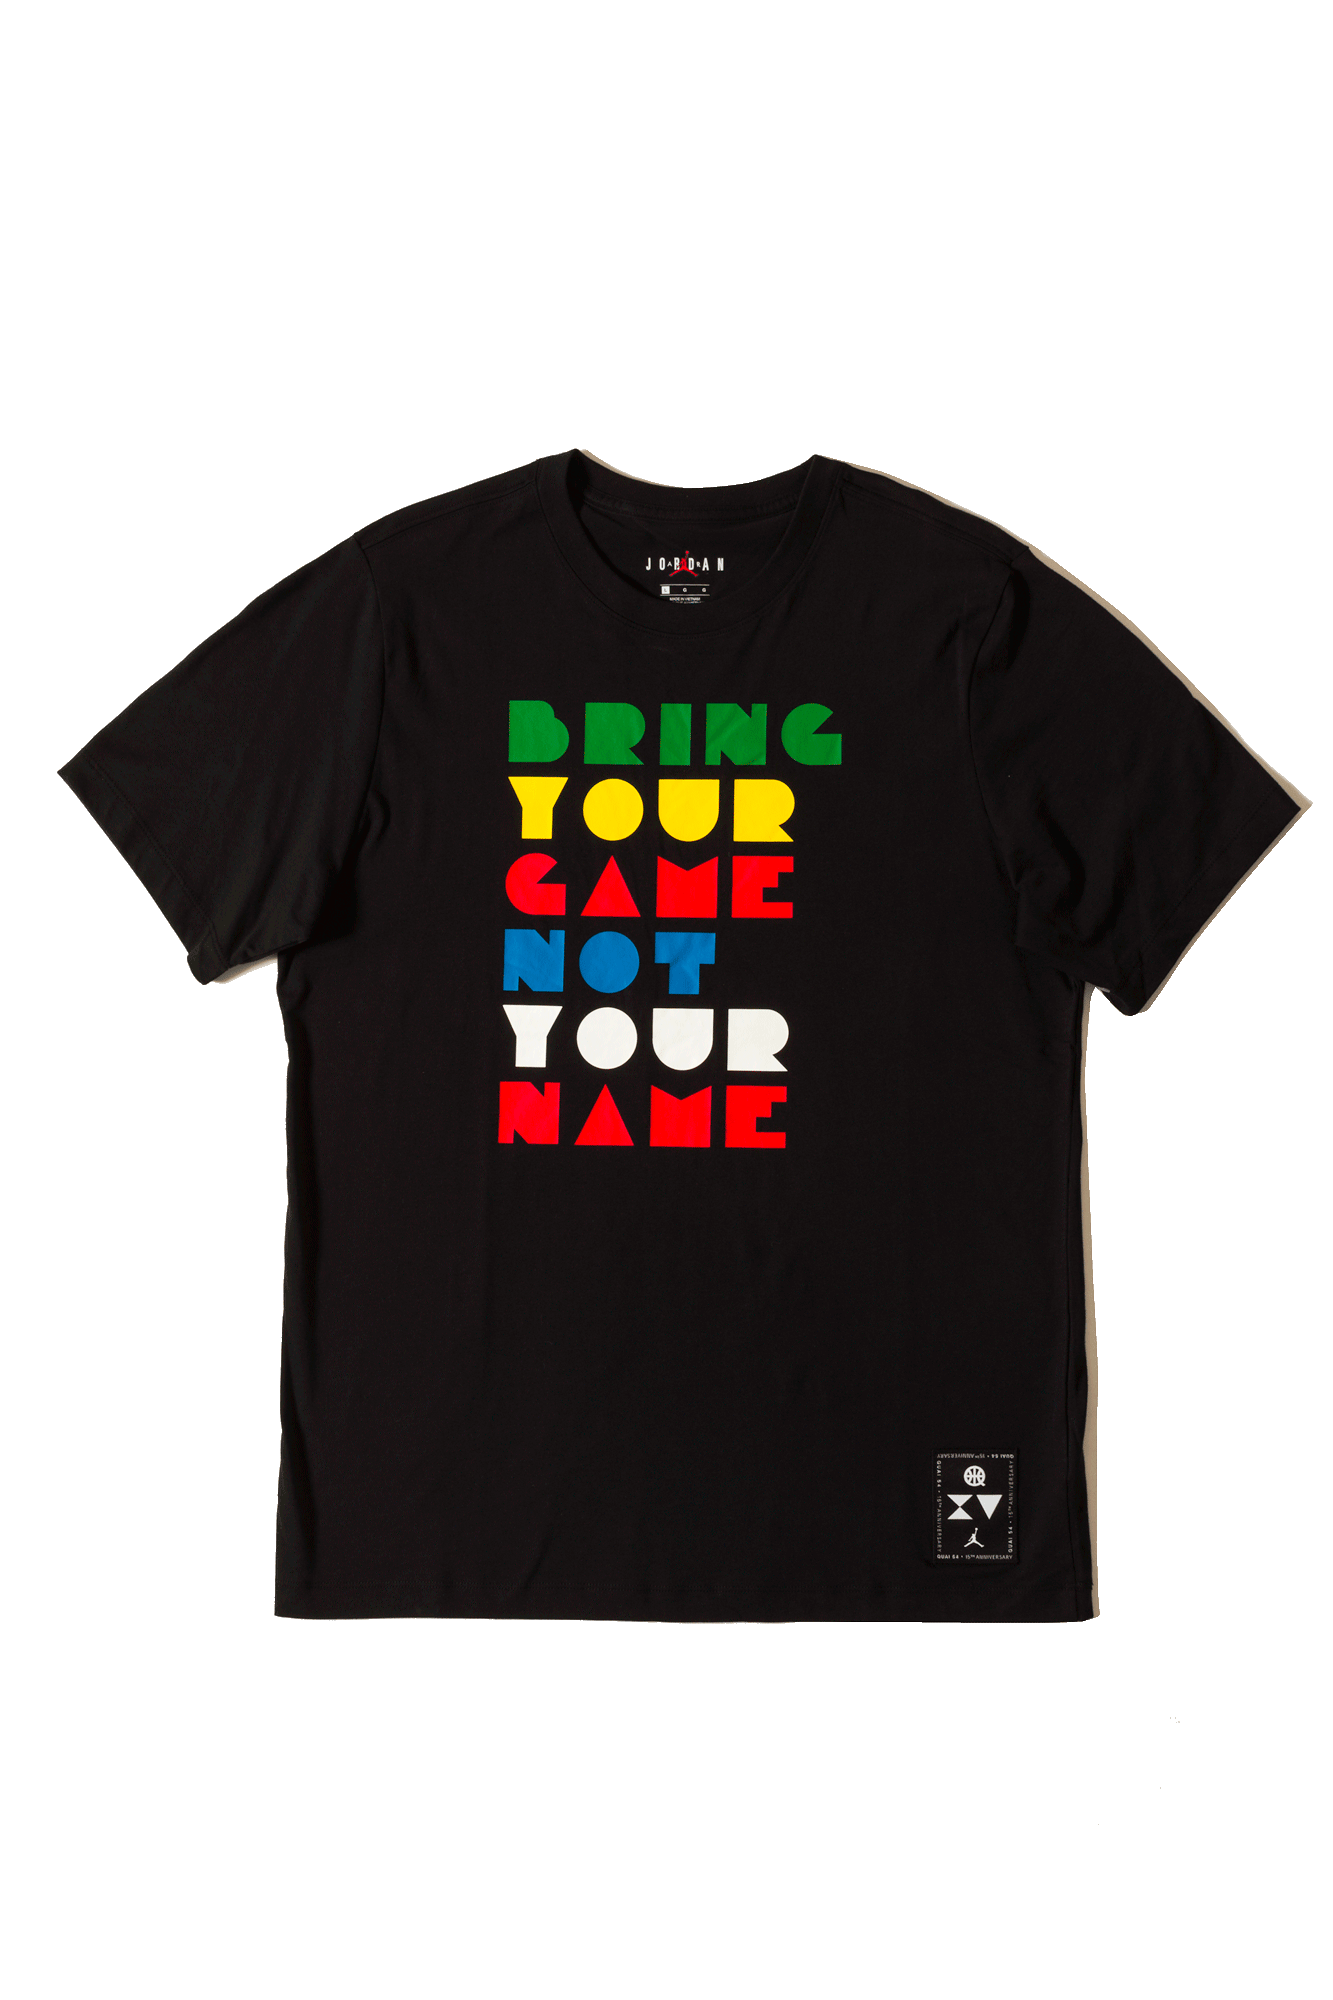 Air Jordan T-Shirts Logo Tee Quai54 Nero CK0610-010#000#C0010#XS - One Block Down